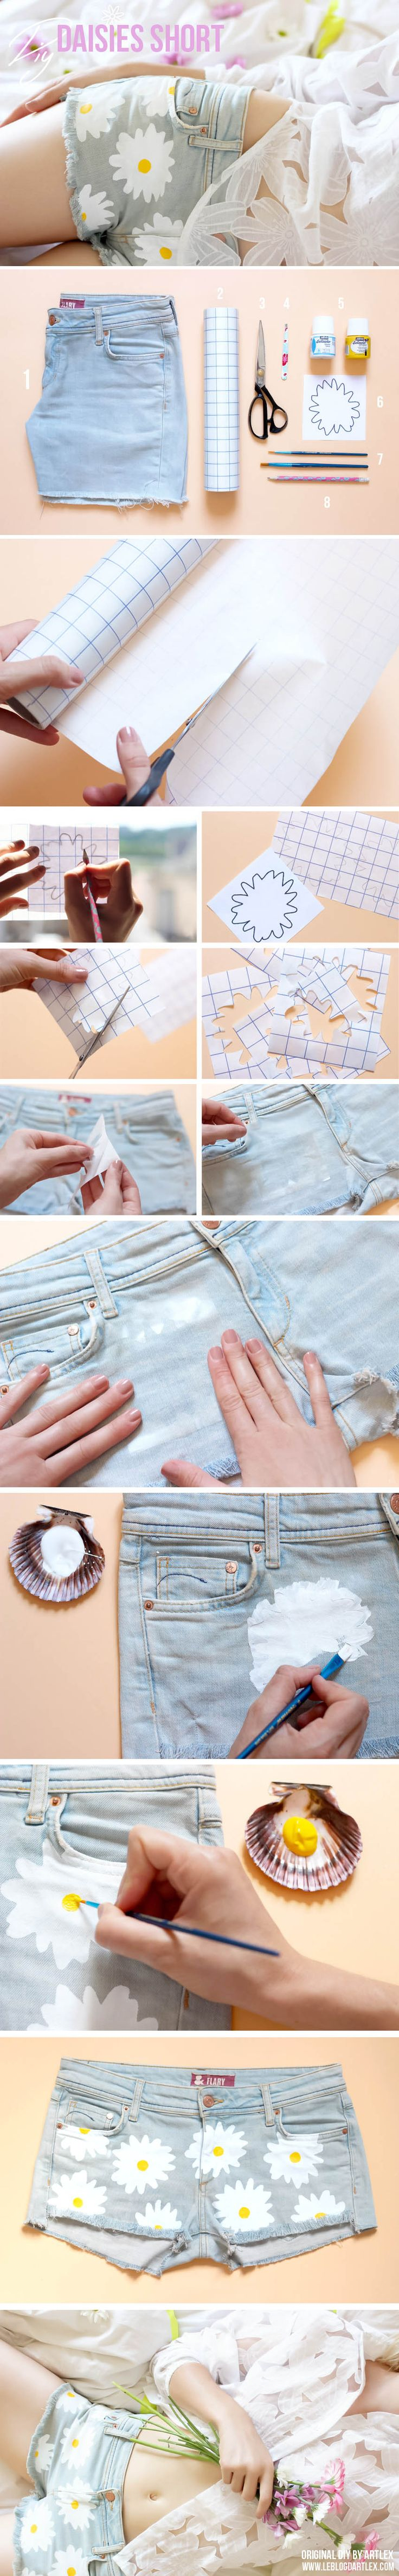 daisy short DIY, DIY short, DIY short marguerite, denim DIY, customiser un short, daisies short DIY